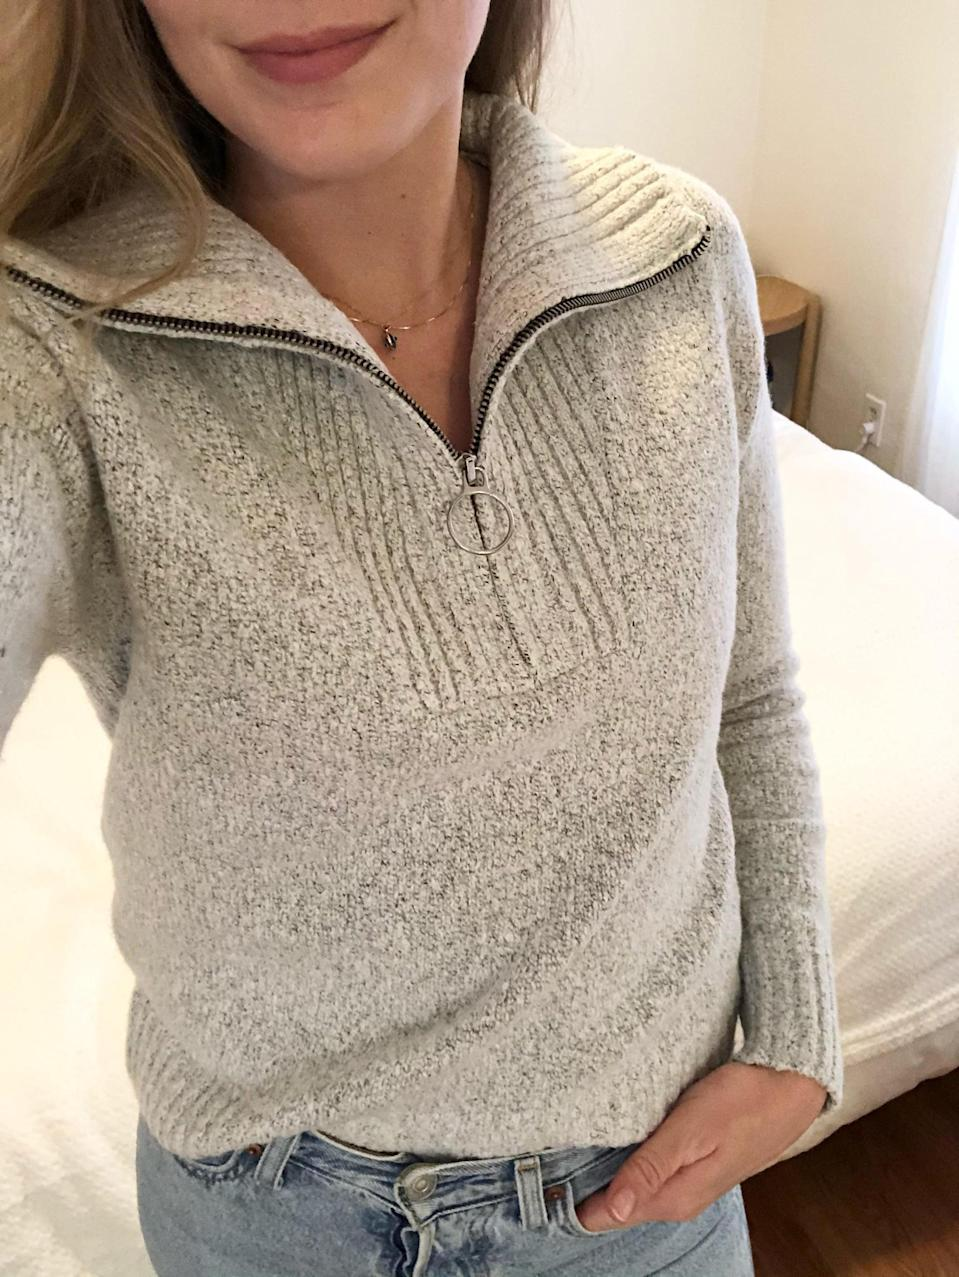 "<p><strong>The Style:</strong> <span>Old Navy Mock-Neck 1/4-Zip Sweater</span> ($40, originally $45)</p> <p><strong>The Review:</strong> ""I own more classic crewneck sweaters than I can even count, but this season I wanted to try something a little more versatile. The design is easy to wear with jeans when I leave the house, or pair with my sweats when I'm lounging at home. No matter how I style it, I just can't get over how soft and cozy it is."" - Krista Jones, associate editor, Shop</p>"